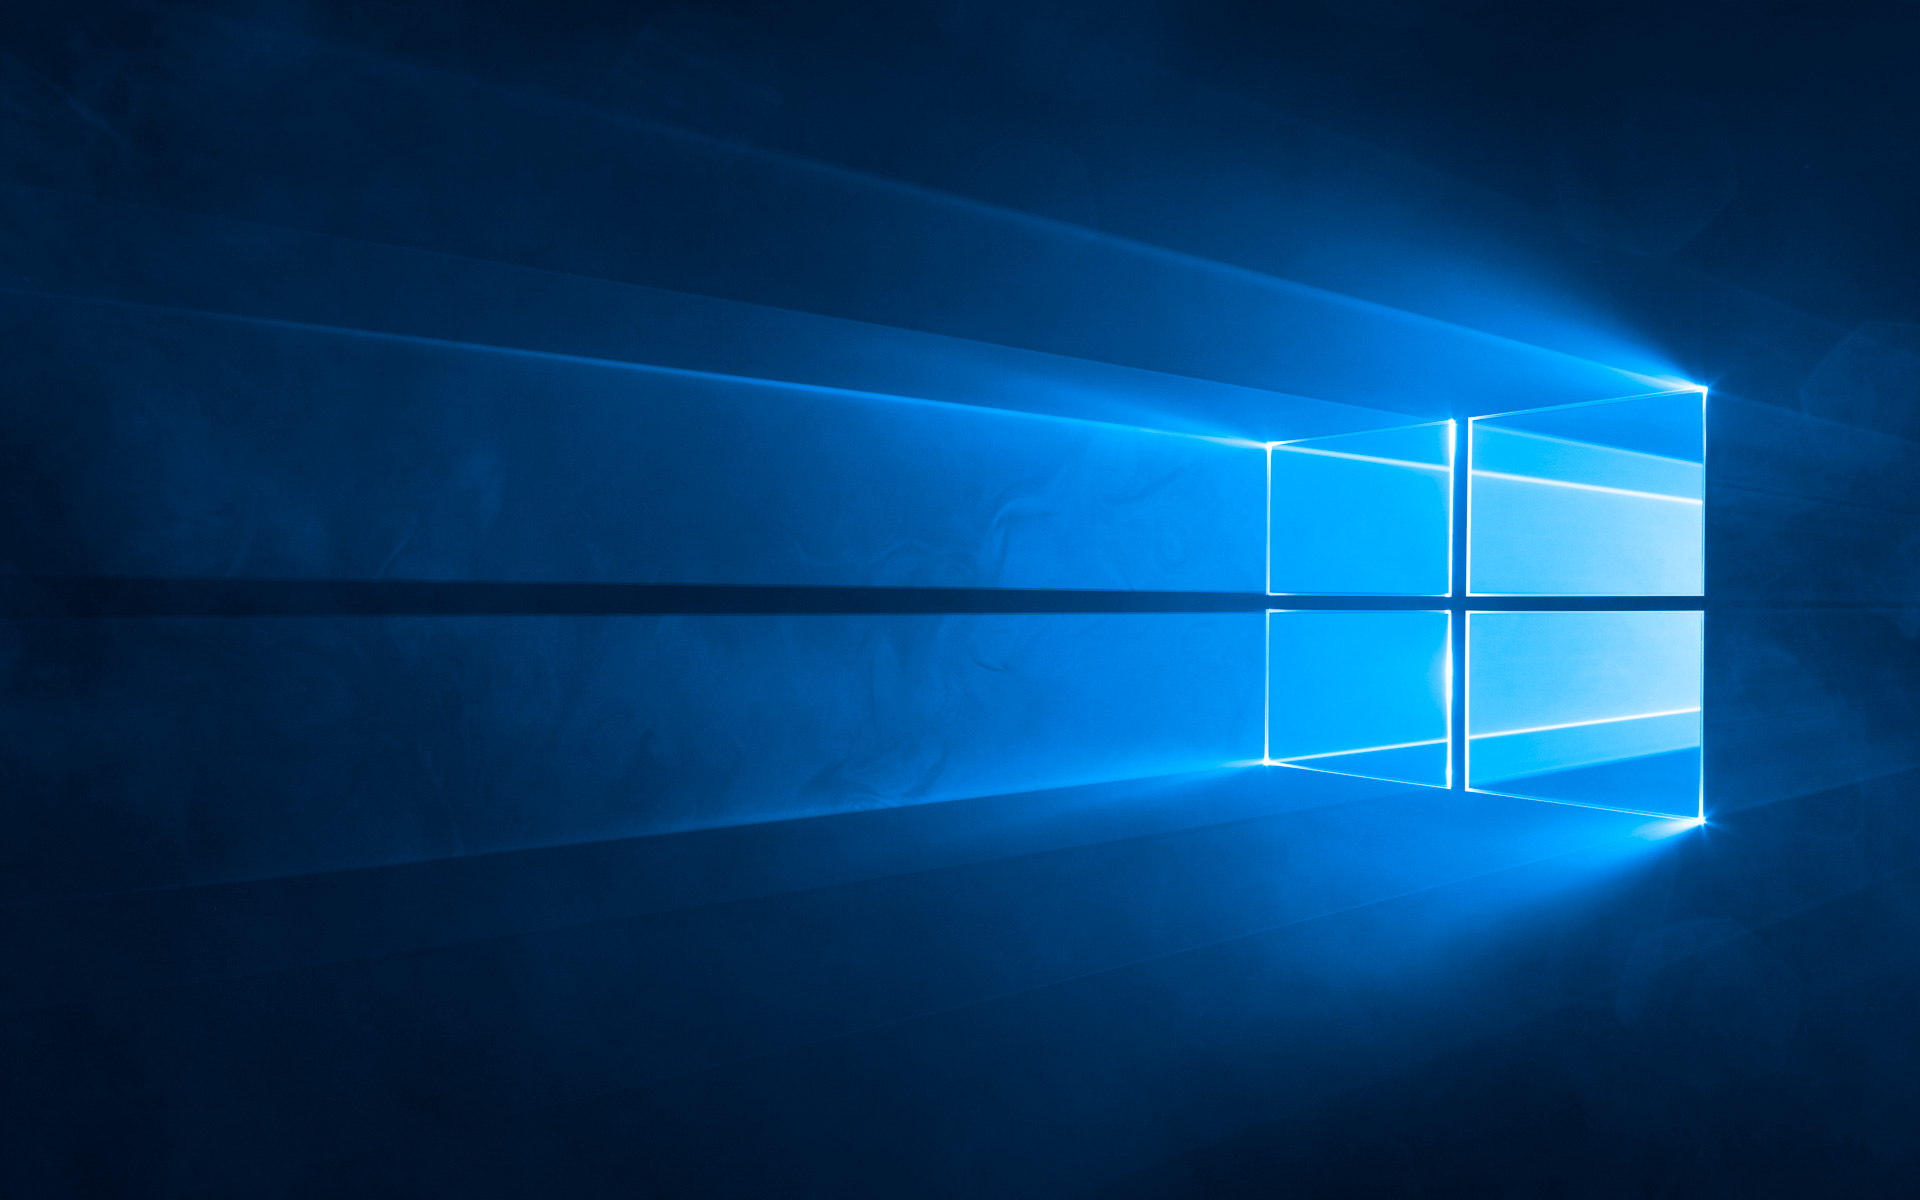 Windows 10 Sfondo